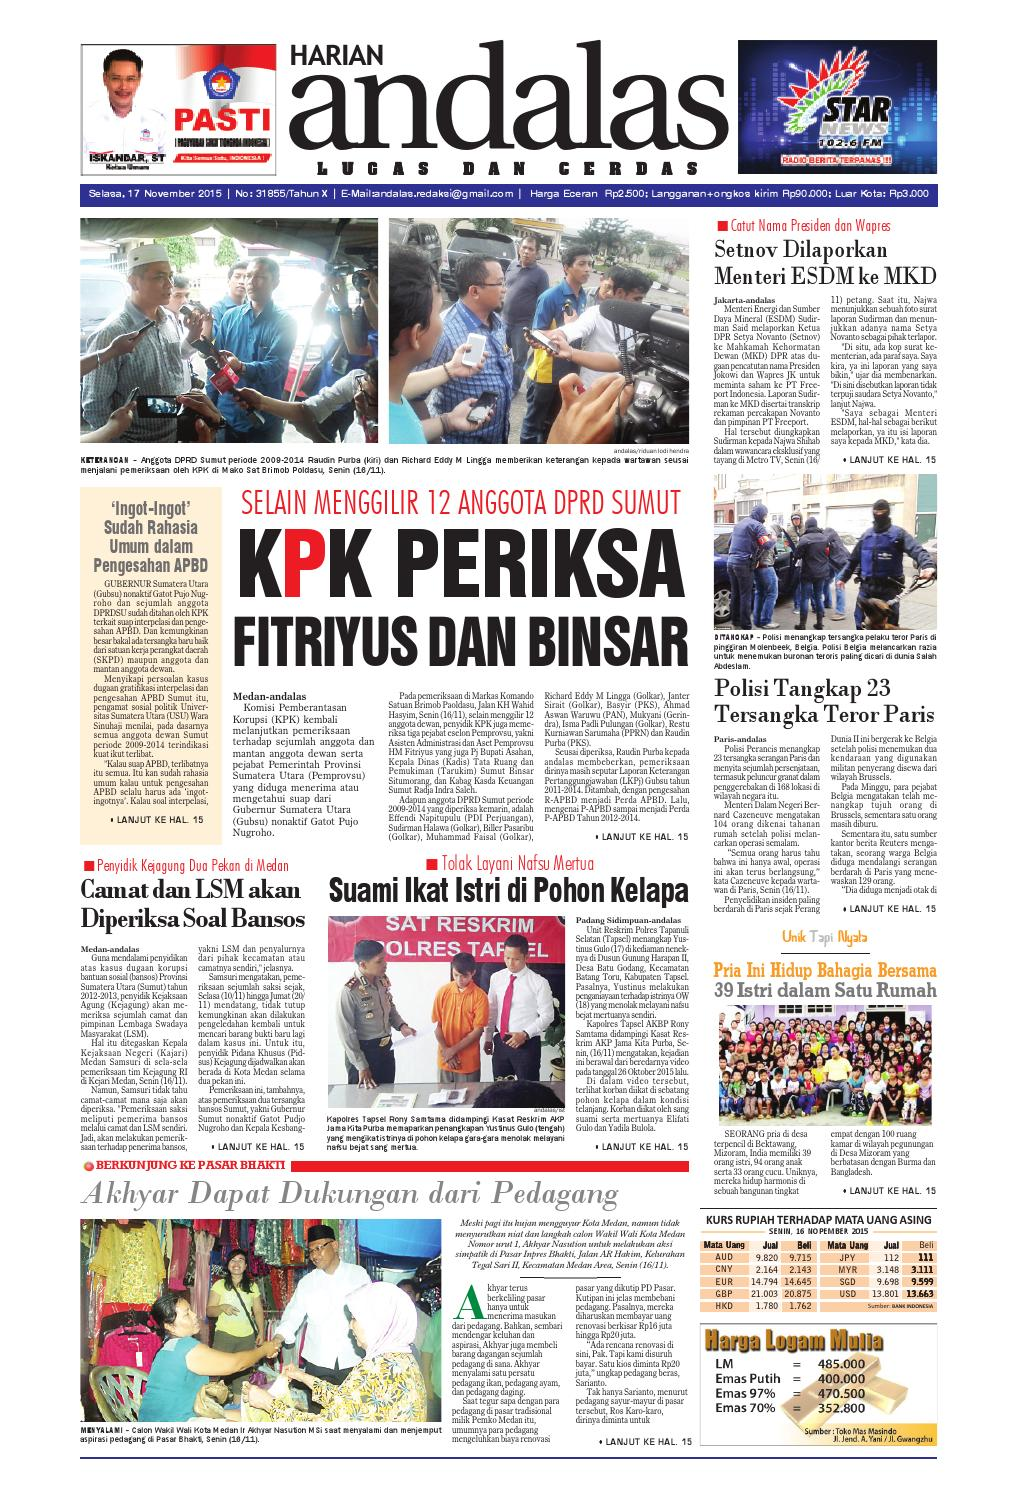 Epaper andalas edisi selasa 17 november 2015 by media andalas - issuu 968cdb2954